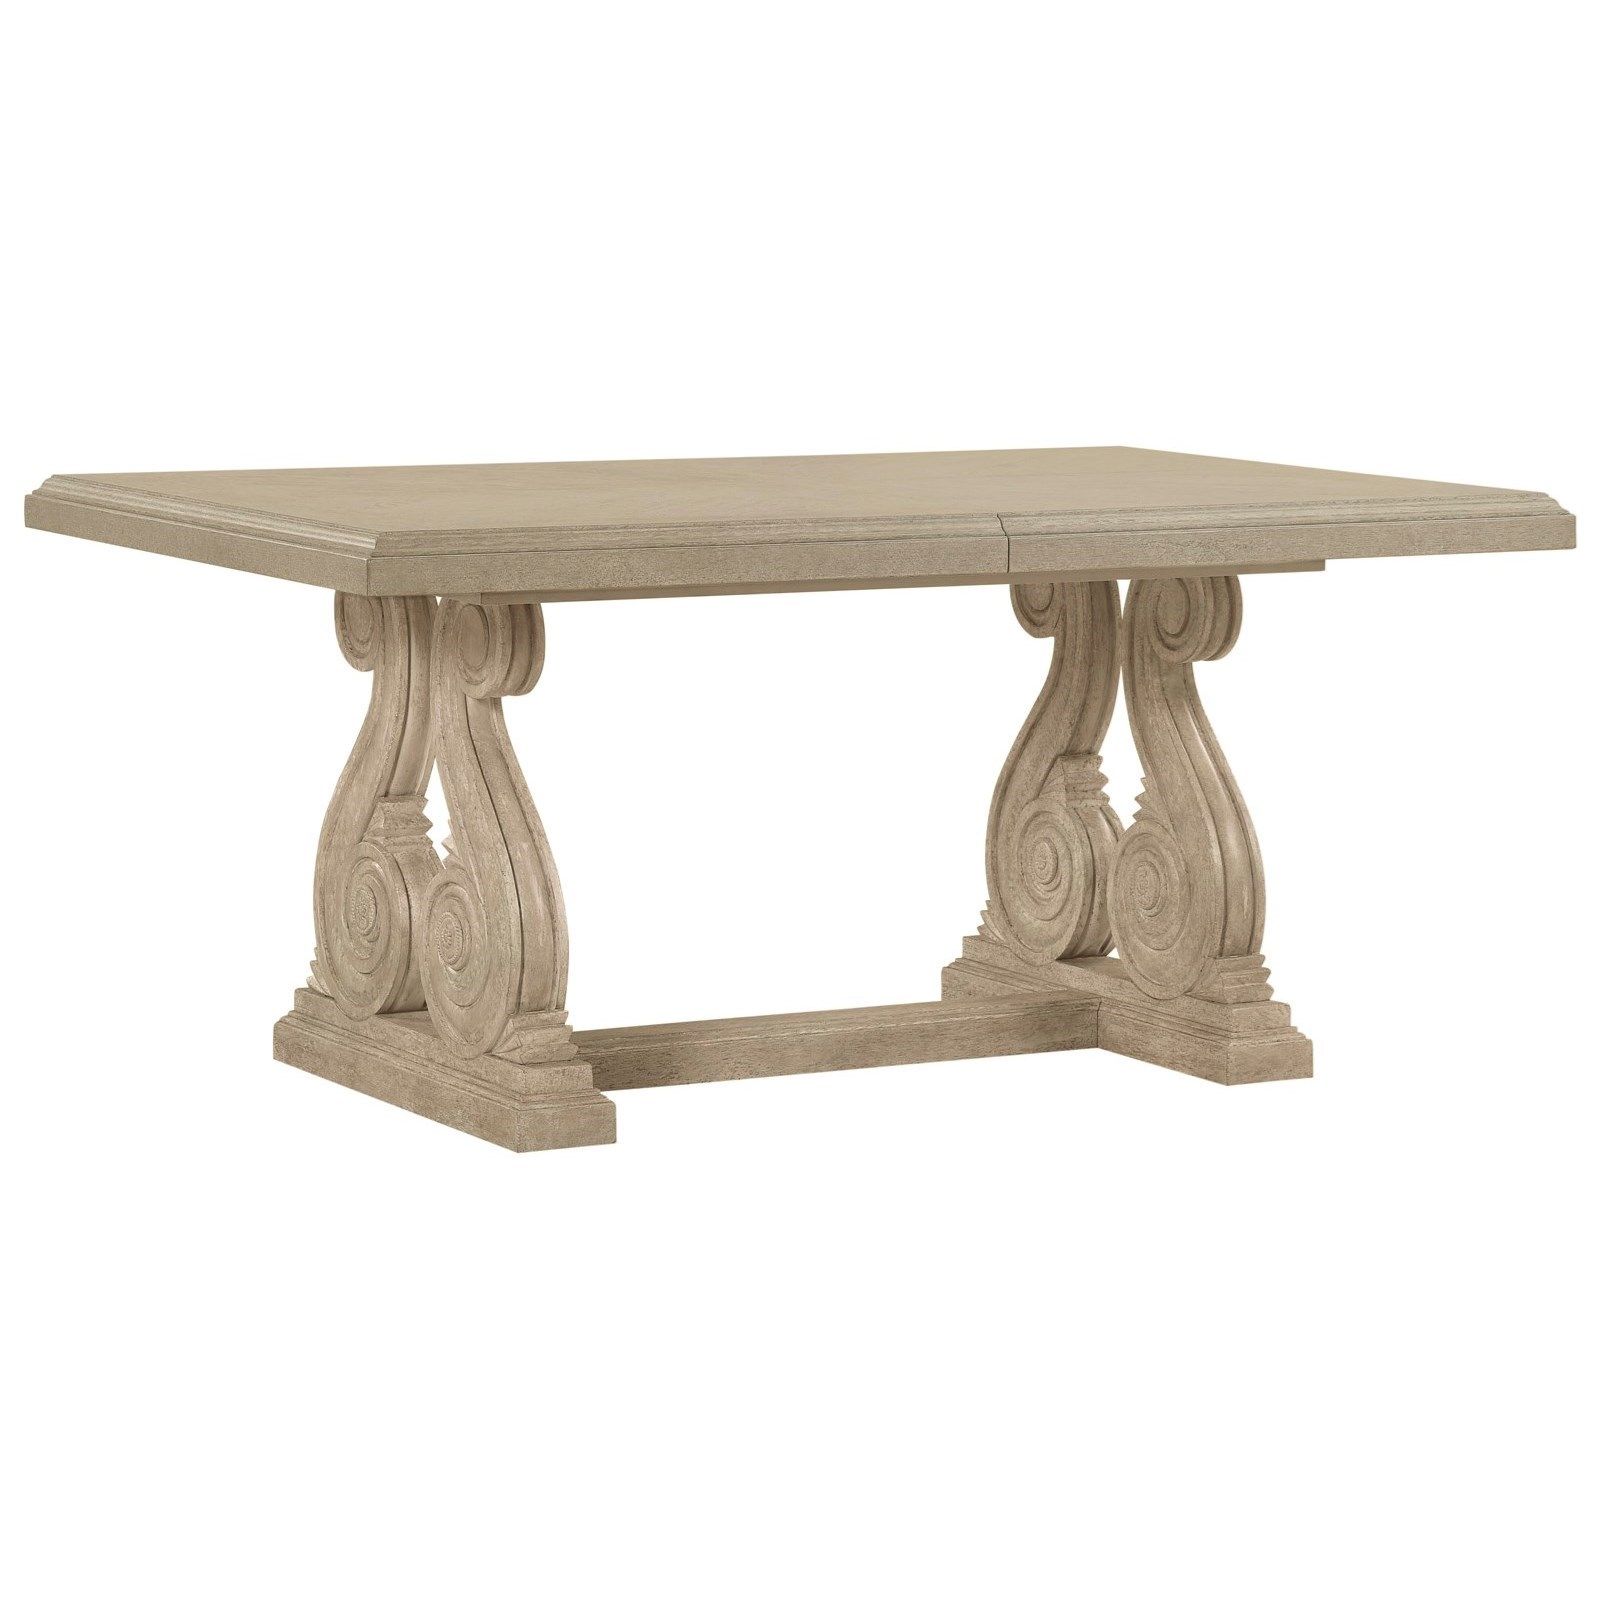 Arch Salvage Rectangular Dining Table by A.R.T. Furniture Inc at Baer's Furniture